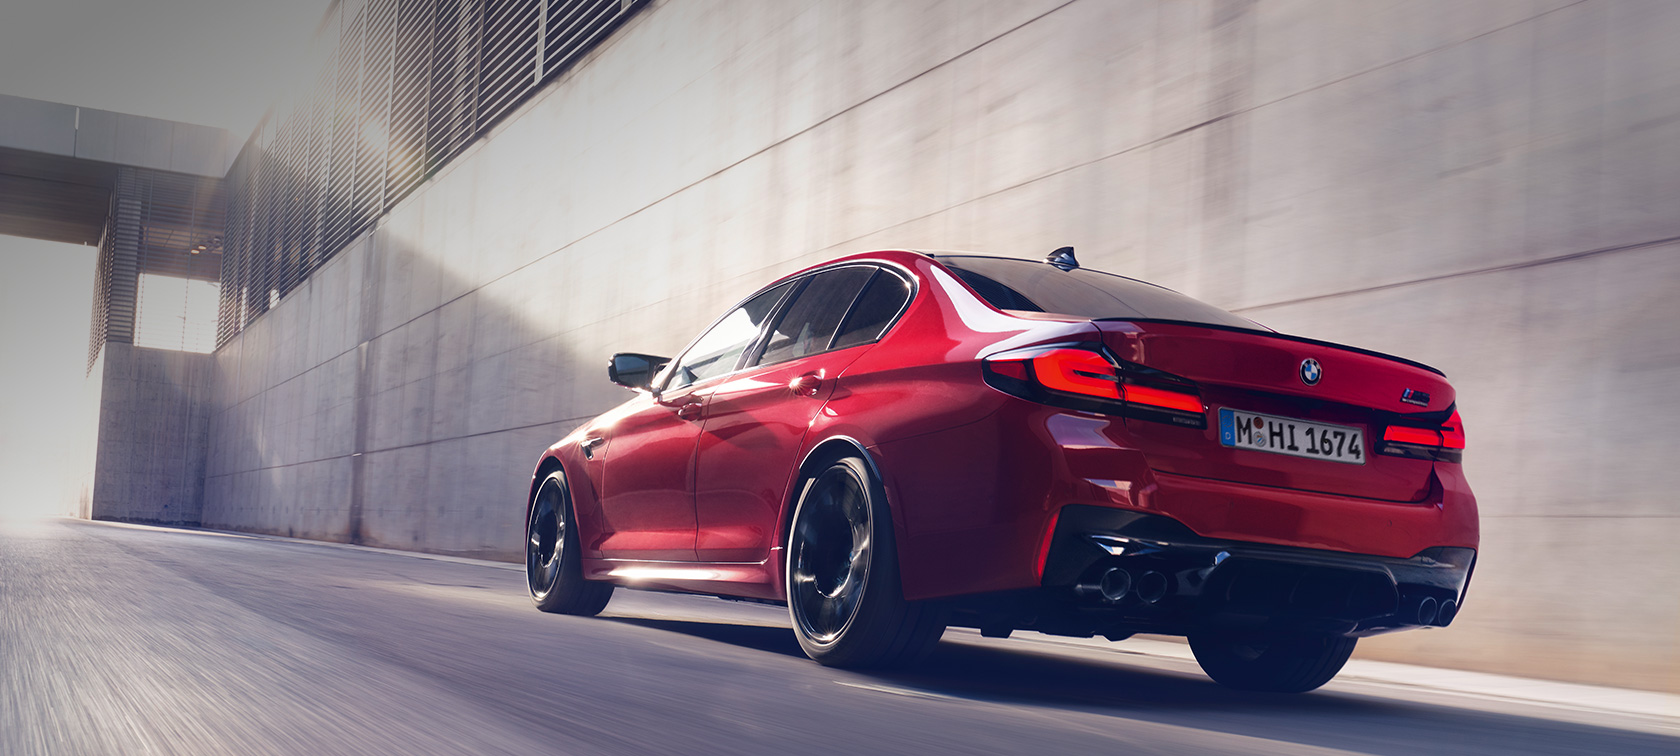 BMW M5 Competition F90 LCI Facelift 2020 BMW Individual Imola Red vista posteriore a tre quarti in movimento